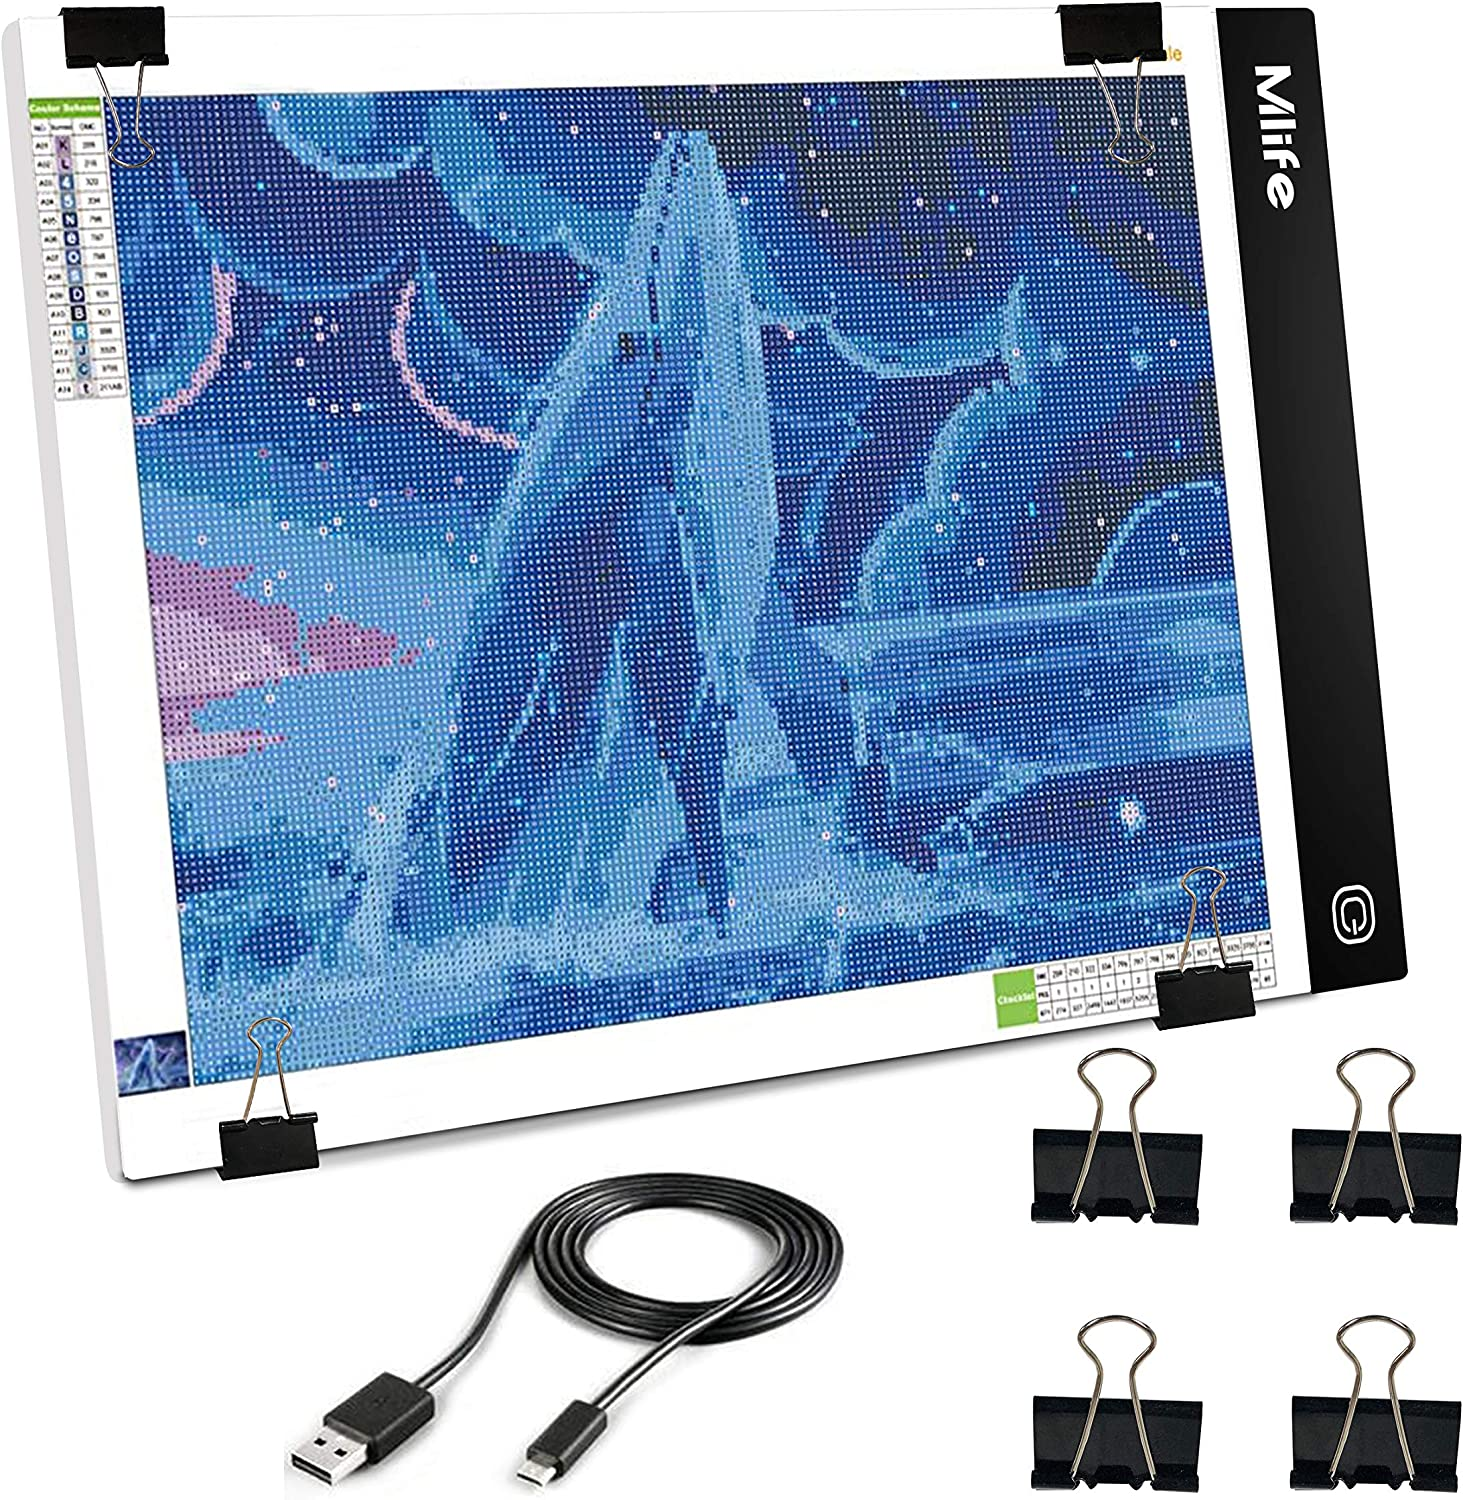 Mlife B4 LED Light Over item handling ☆ Pad Clearance SALE! Limited time! - Upgraded Box Diamond Dim Painting